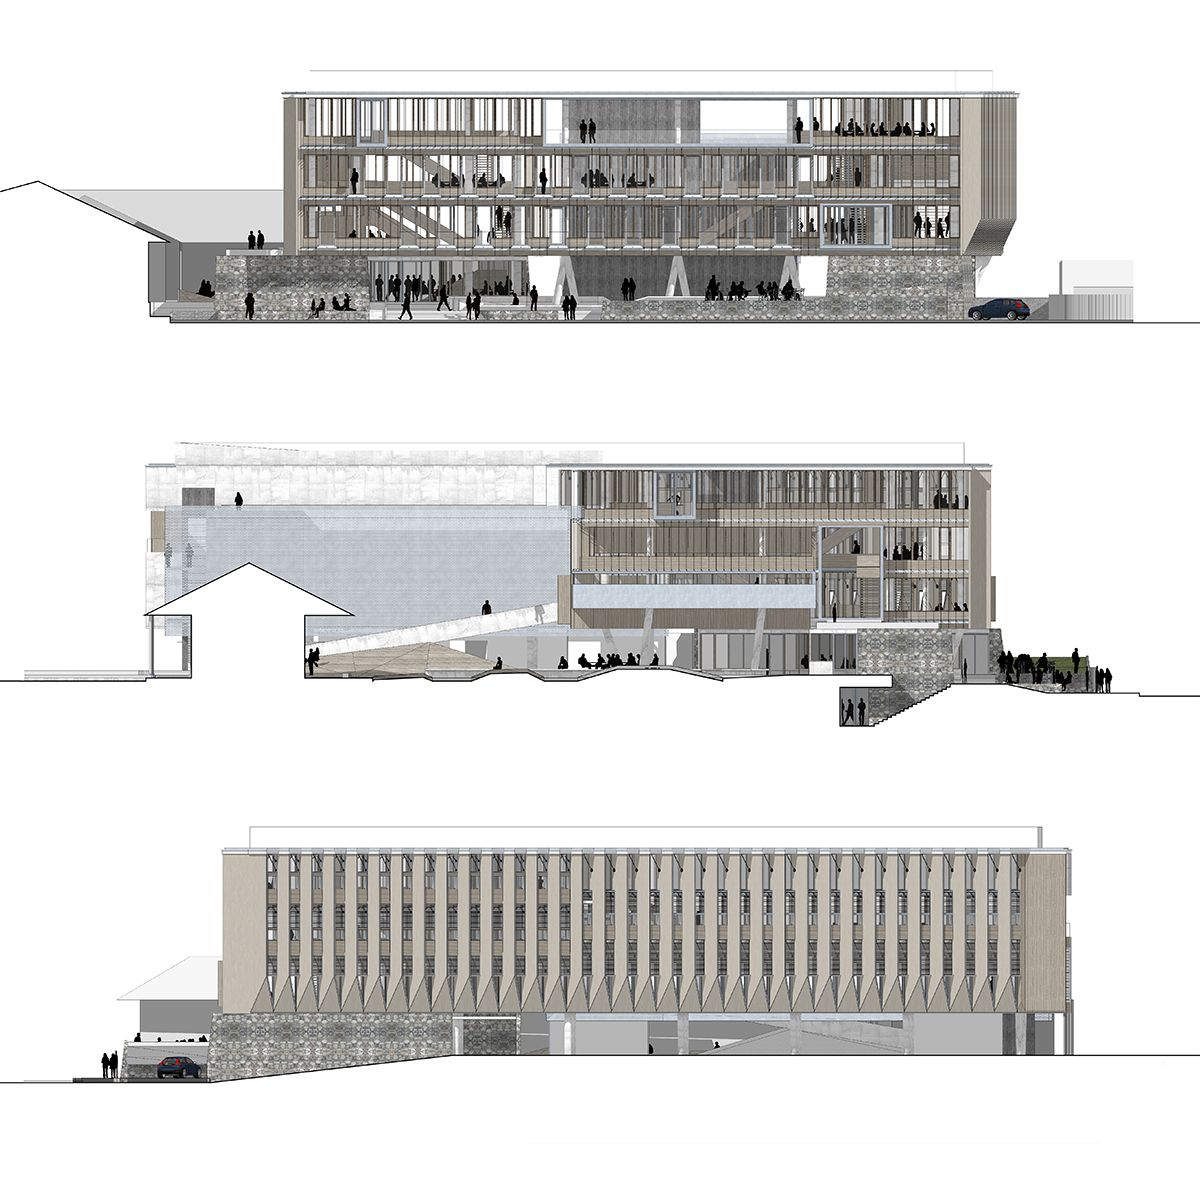 Pin By Mariela Beron On Architectural Drawings Architecture Graphics Architecture Elevation Revit Architecture